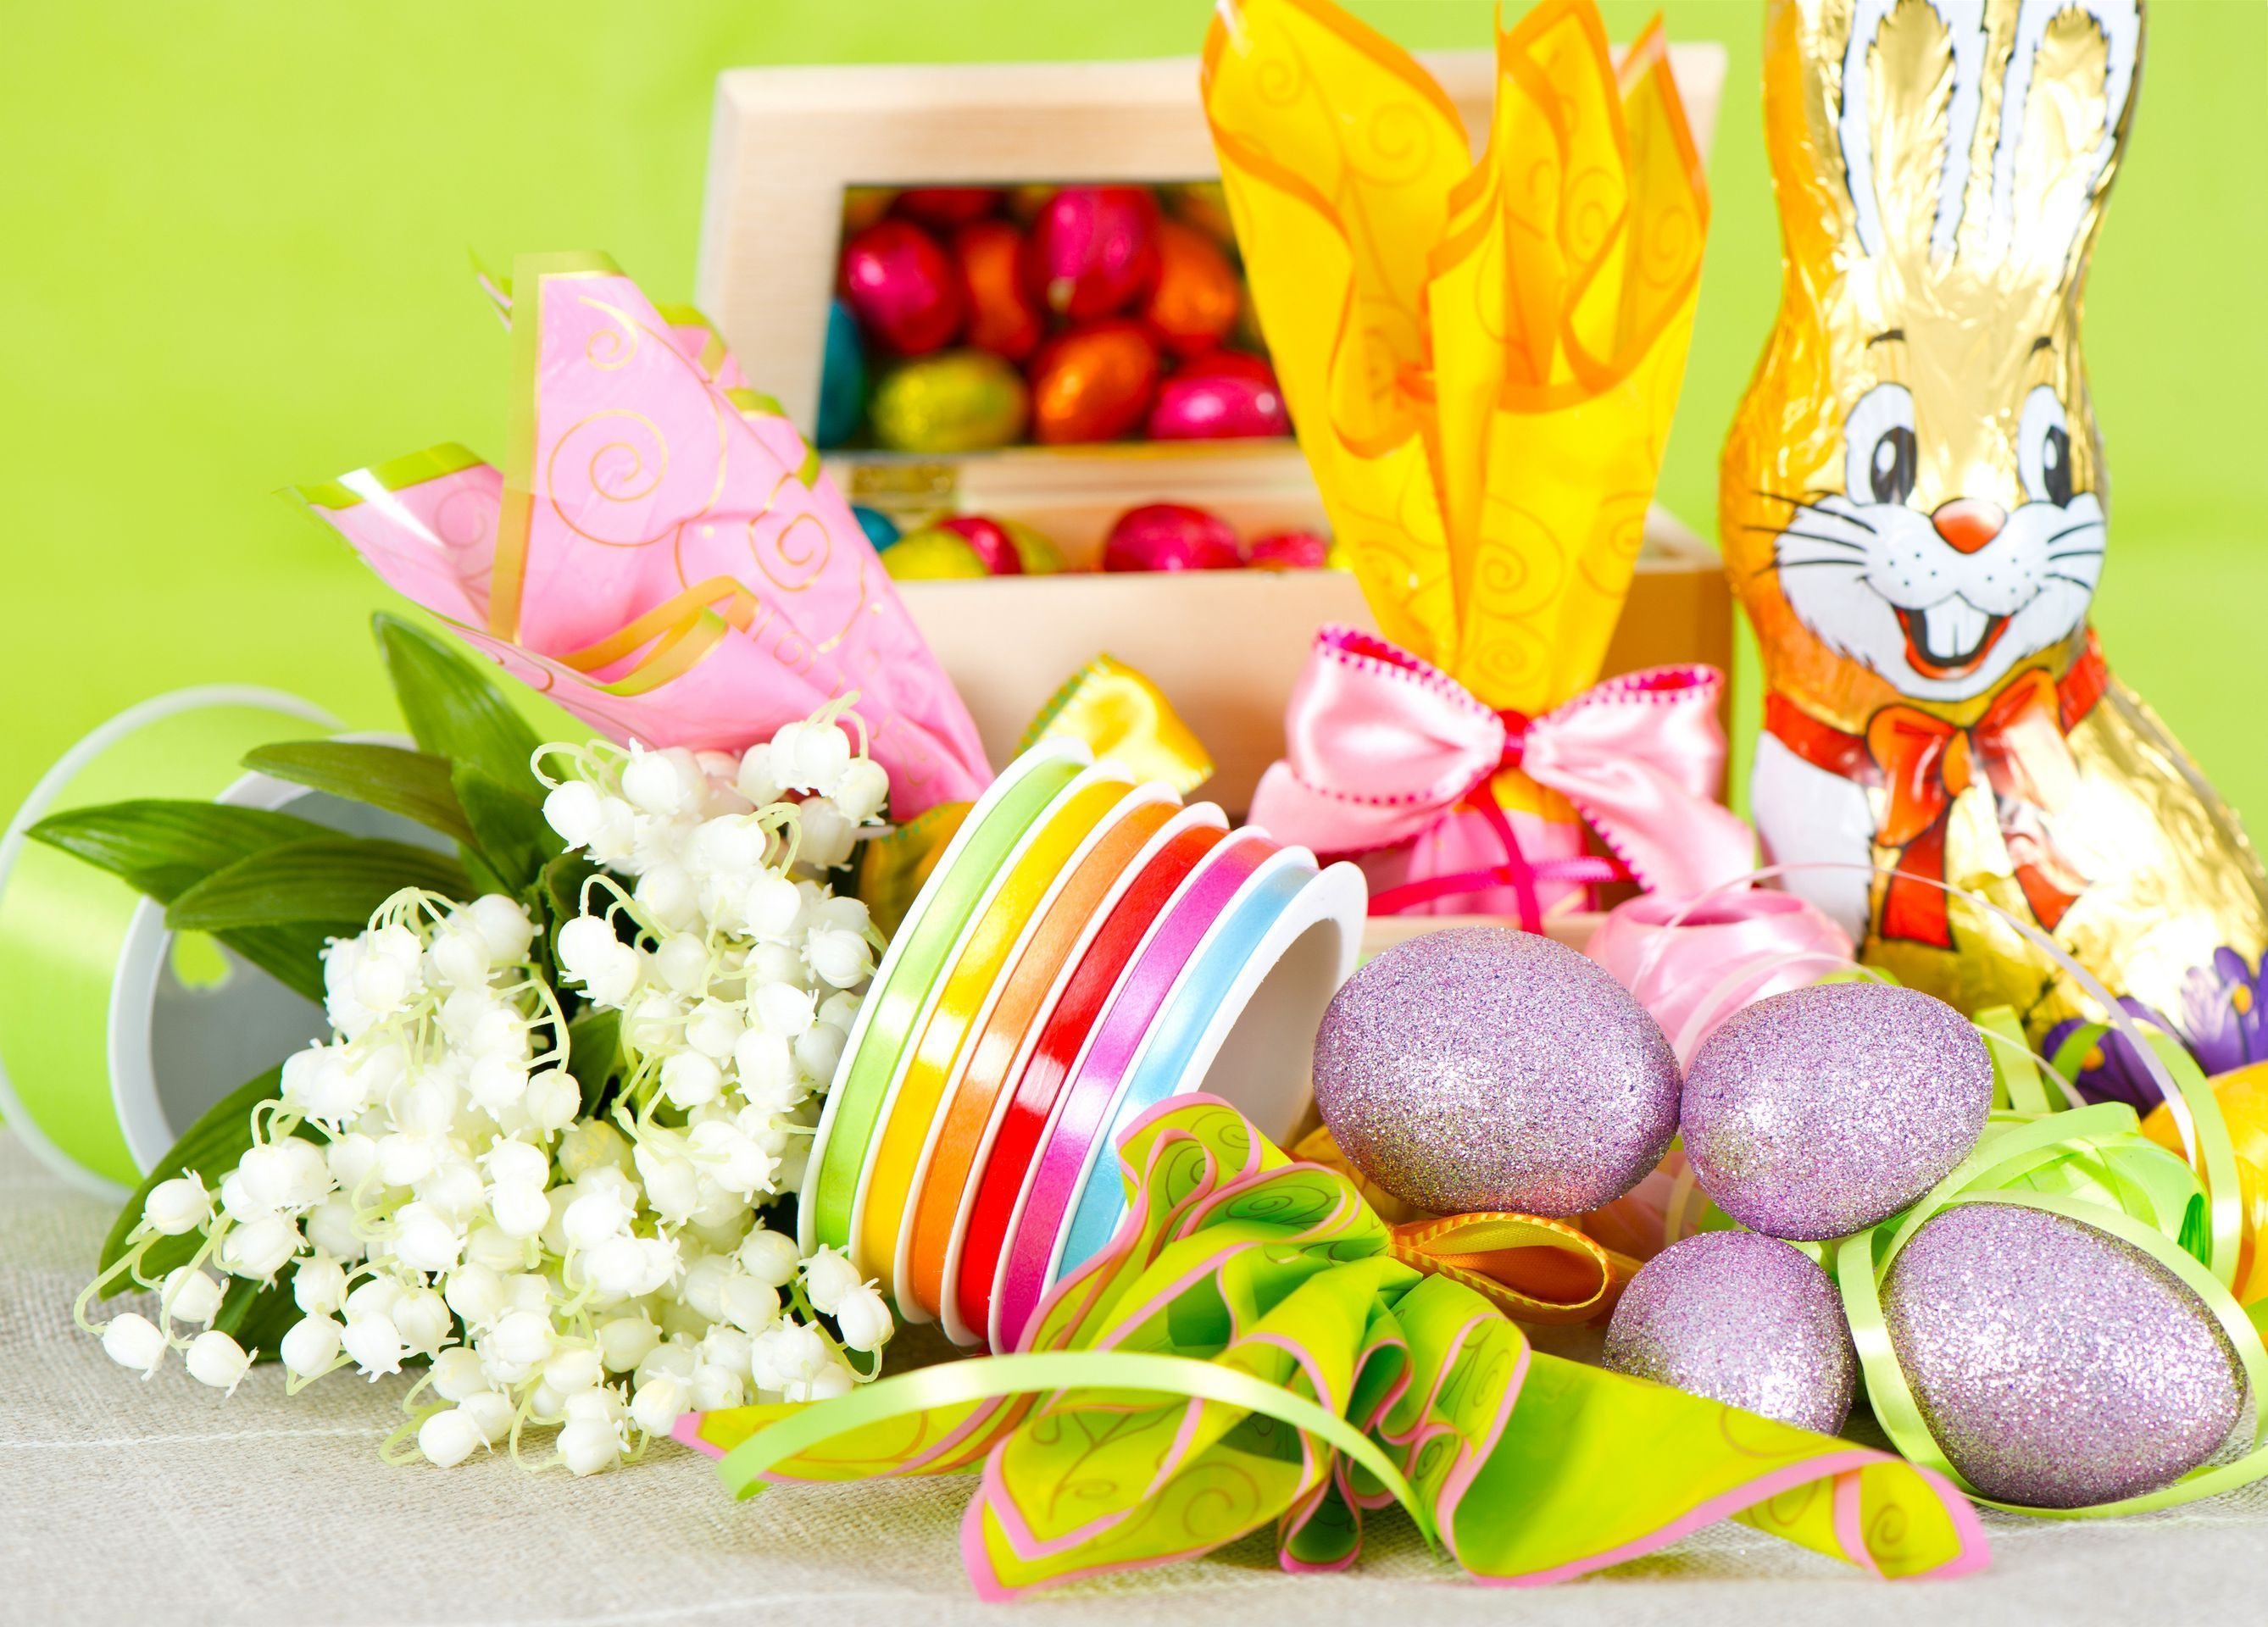 Easter, eggs, chocolate, Chocolate Bunny - HD wallpaper desktop backgrounds